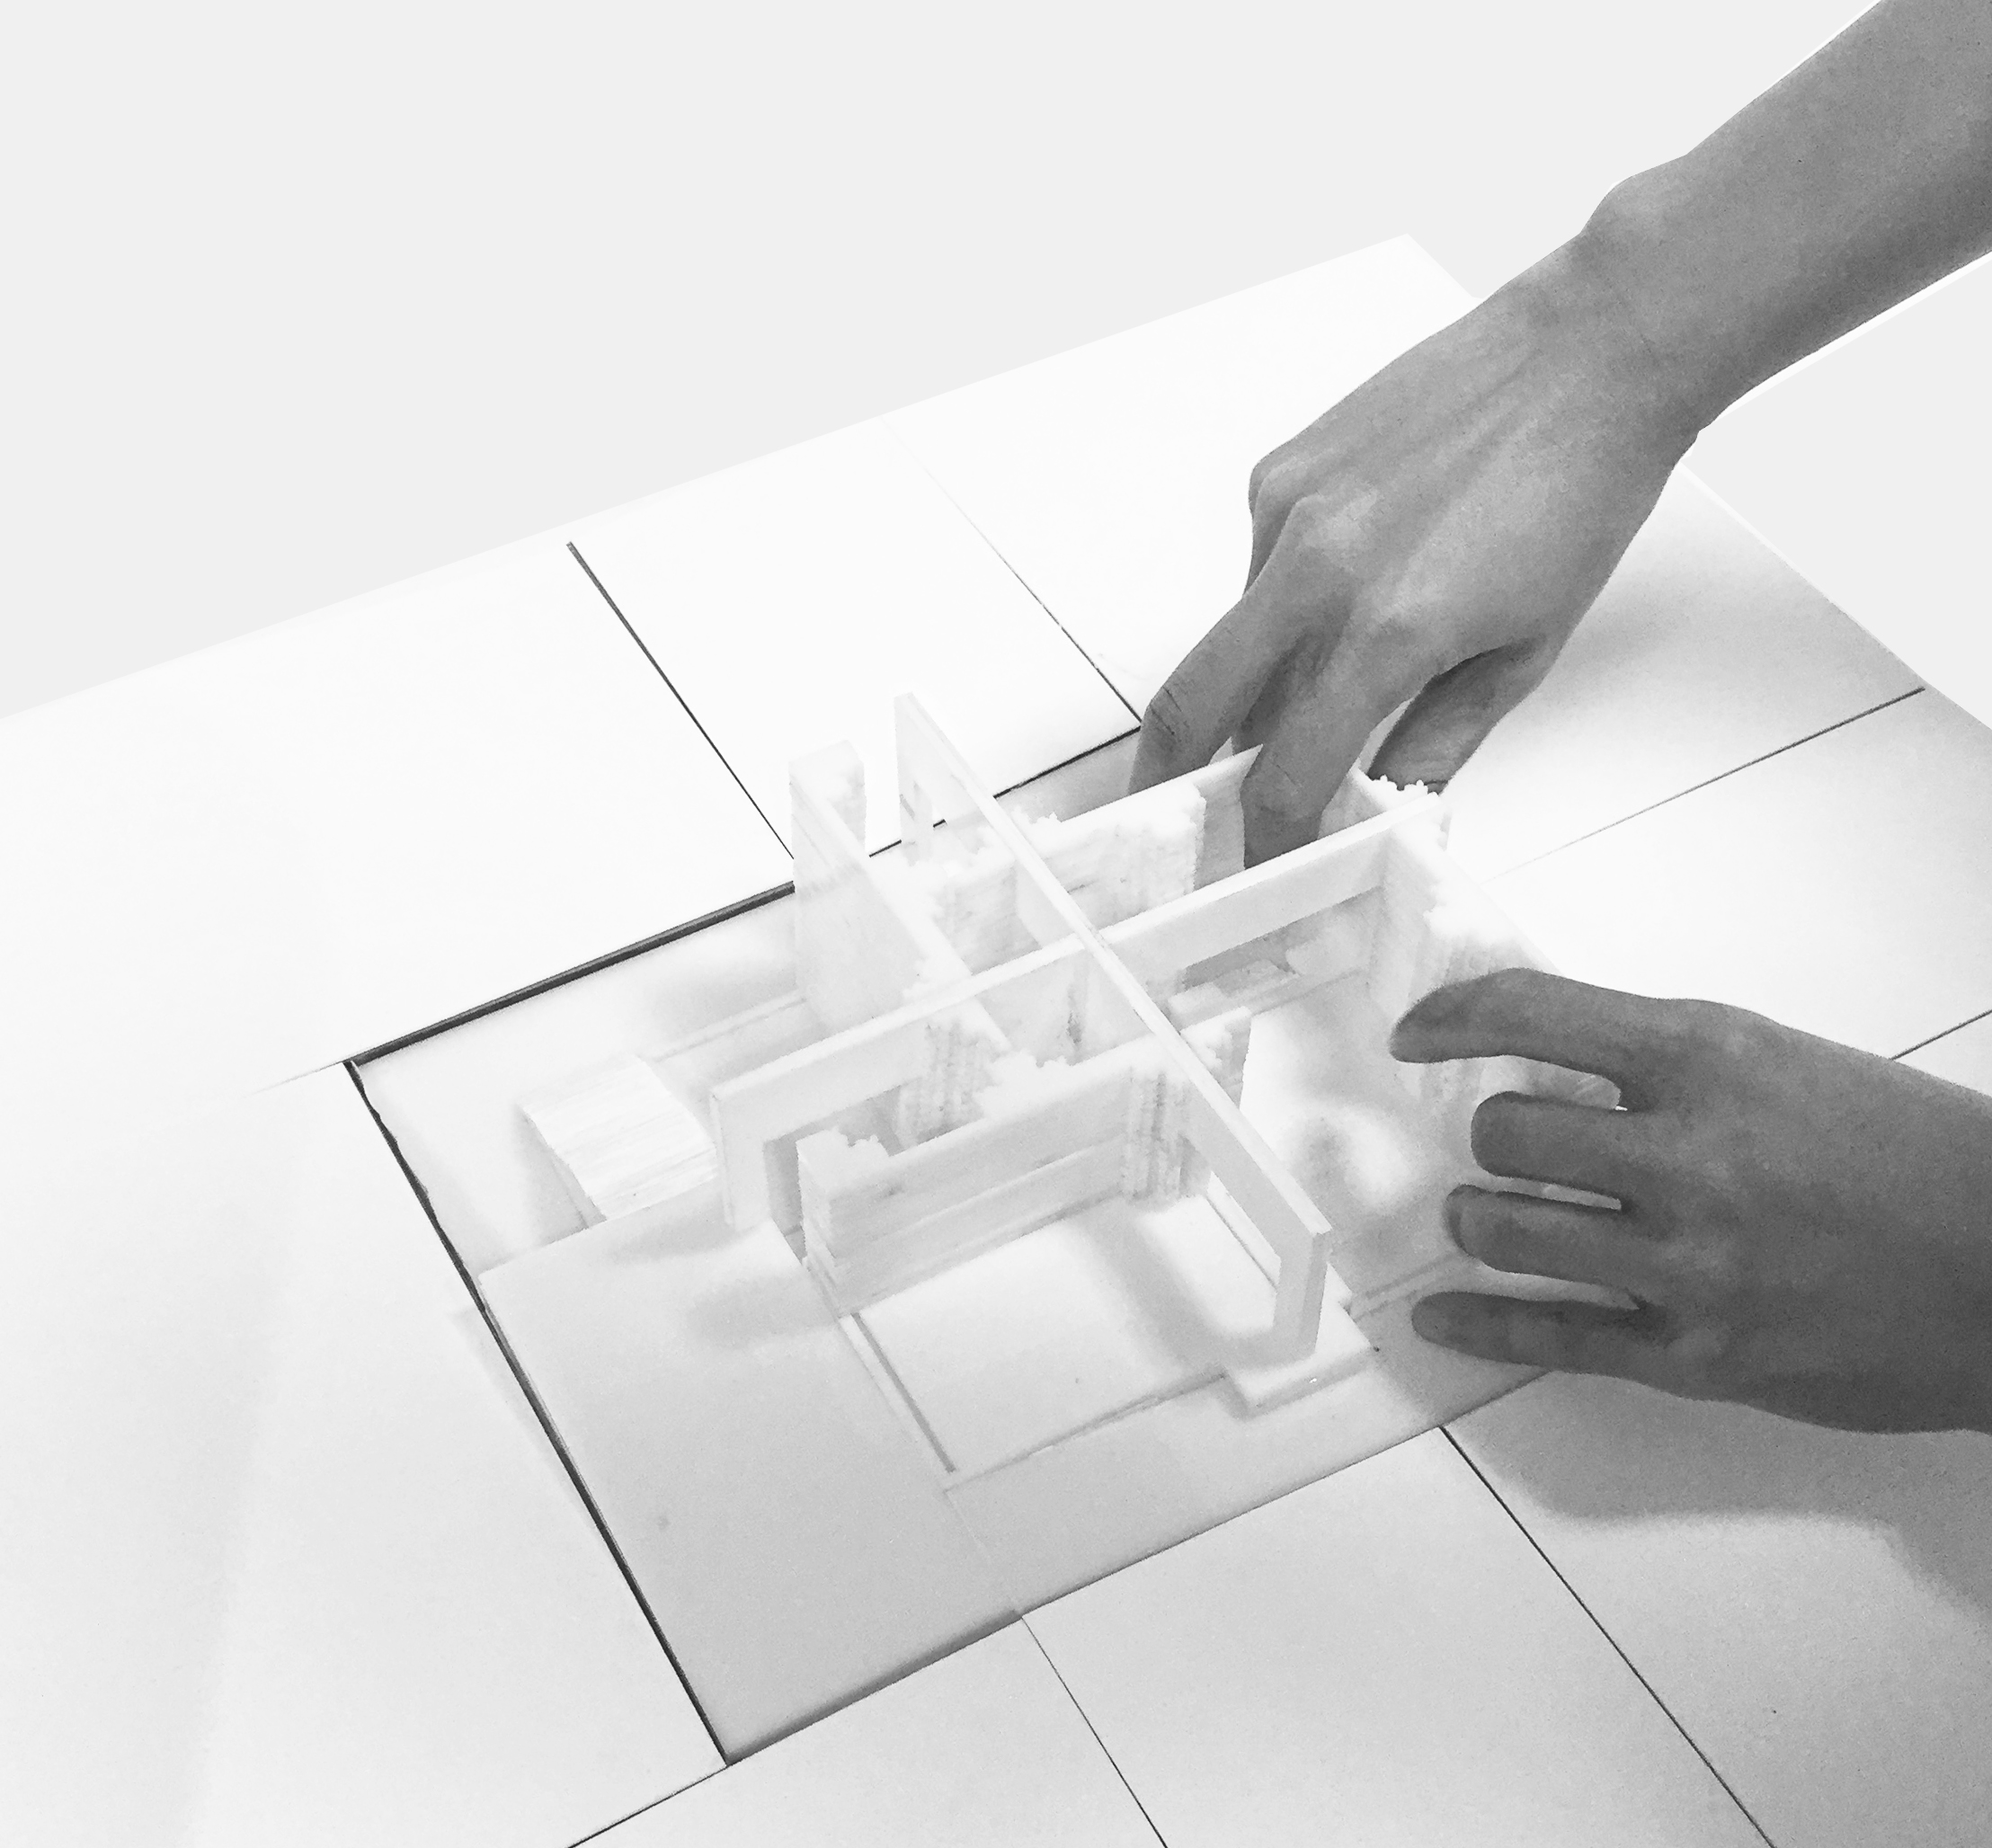 Operable physical model